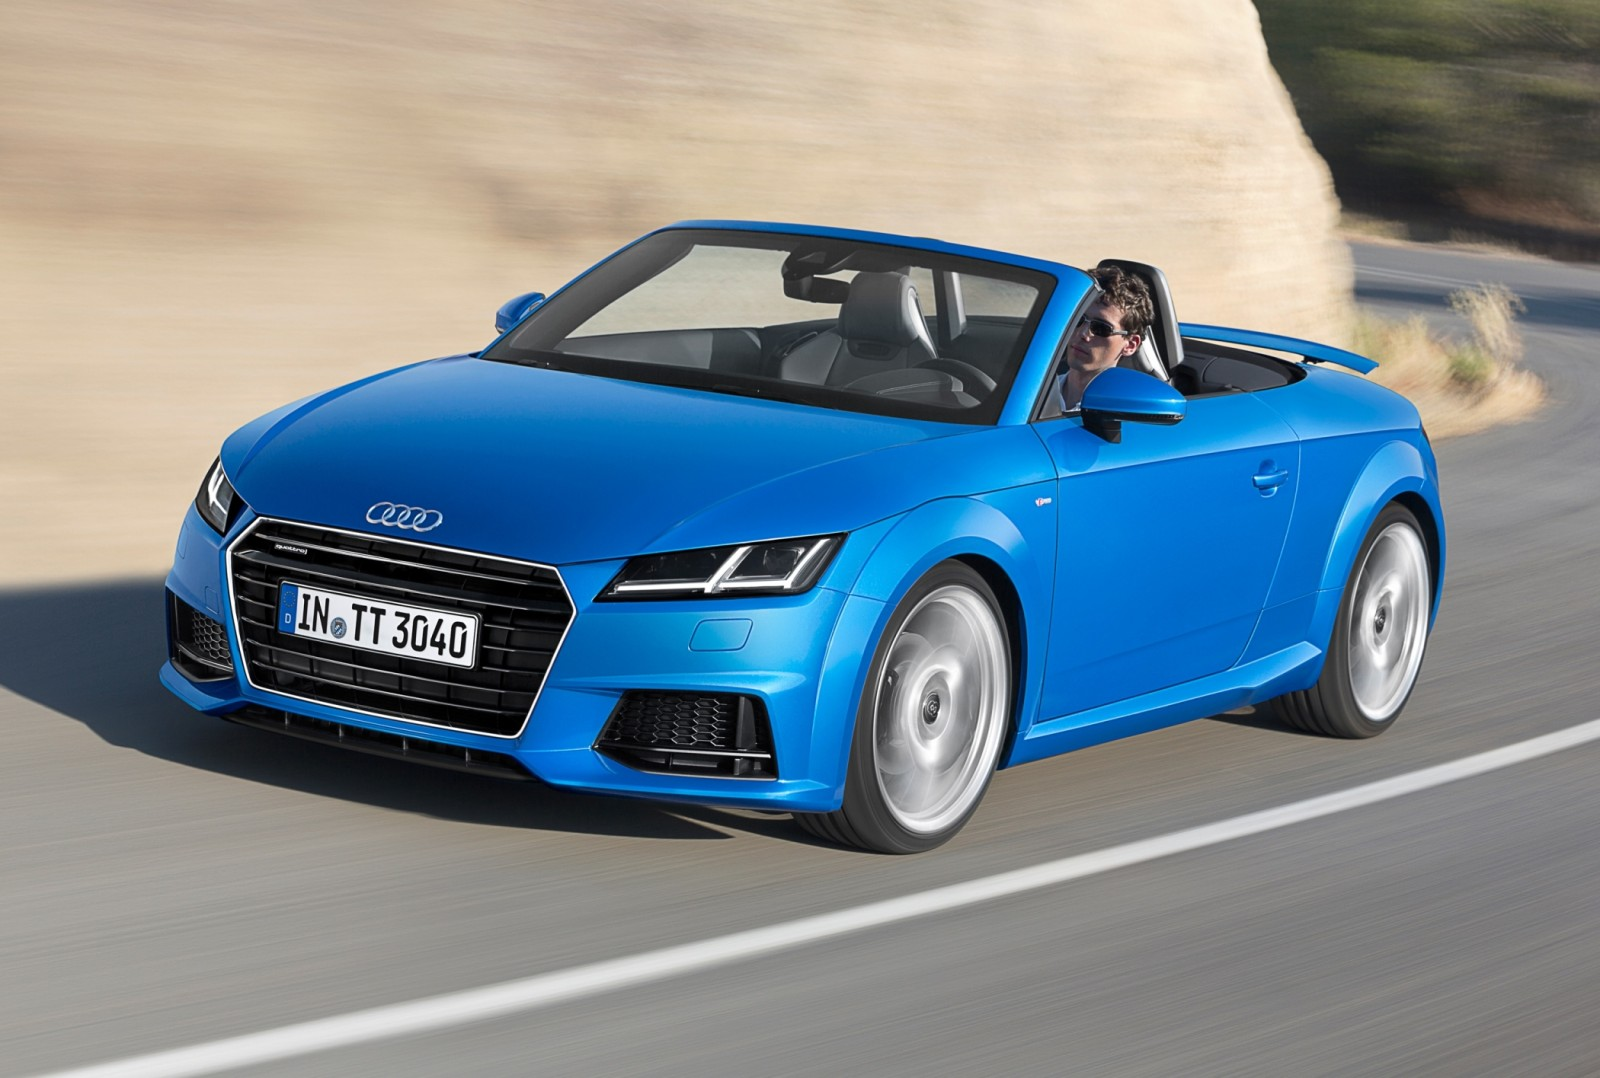 2015 Audi TT and TTS Roadster Revealed Before Paris Show 8